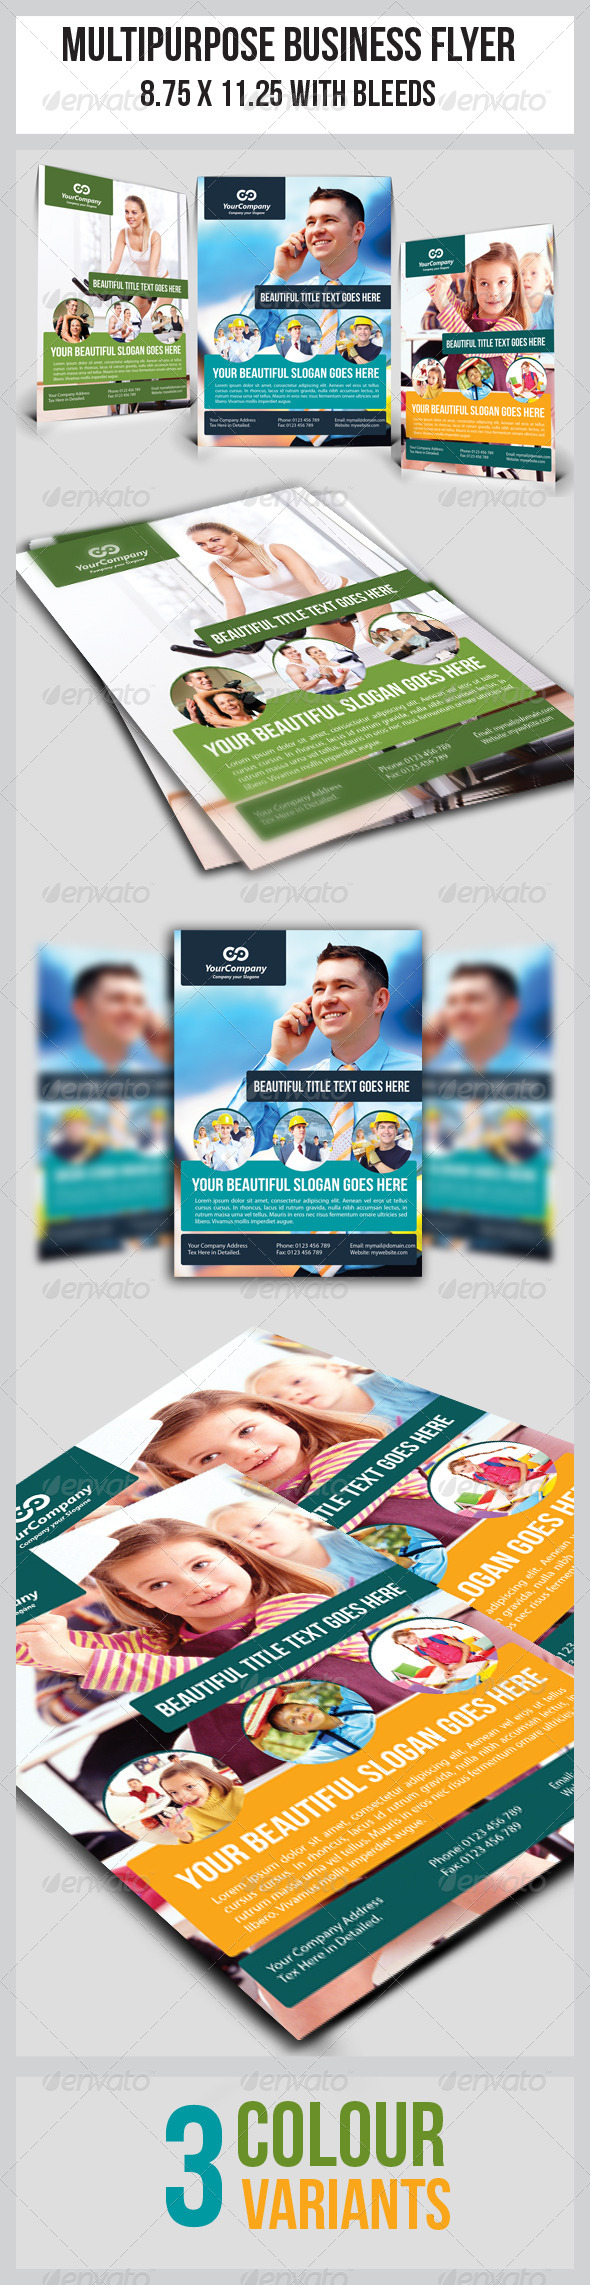 Multipurpose Business Flyer 12 - Corporate Flyers